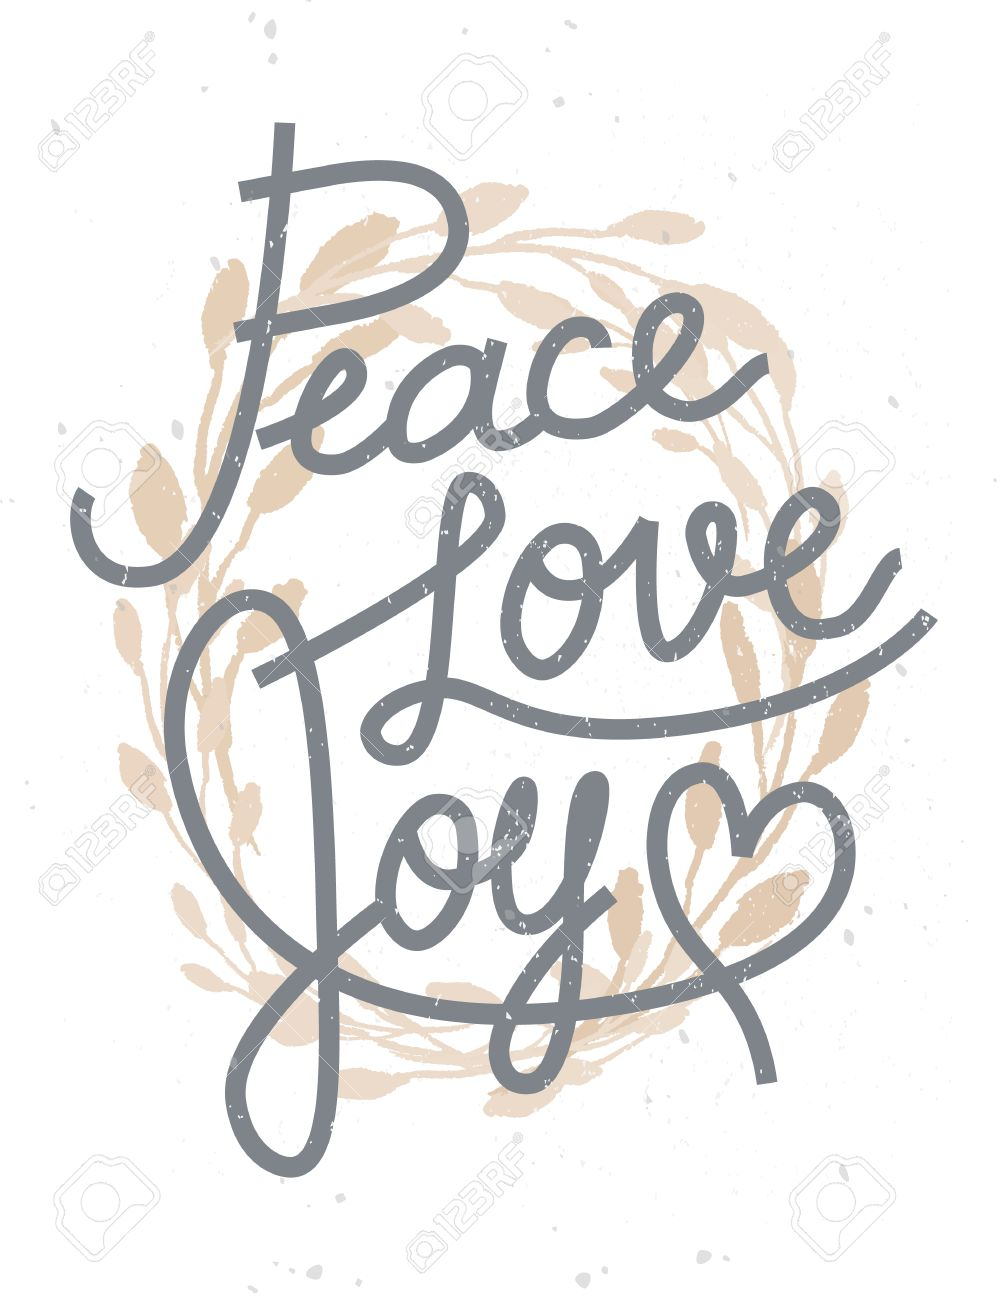 Peace, love, joy Christmas lettering quote with a golden wreath for invitations, greeting cards and other designs - 63730336